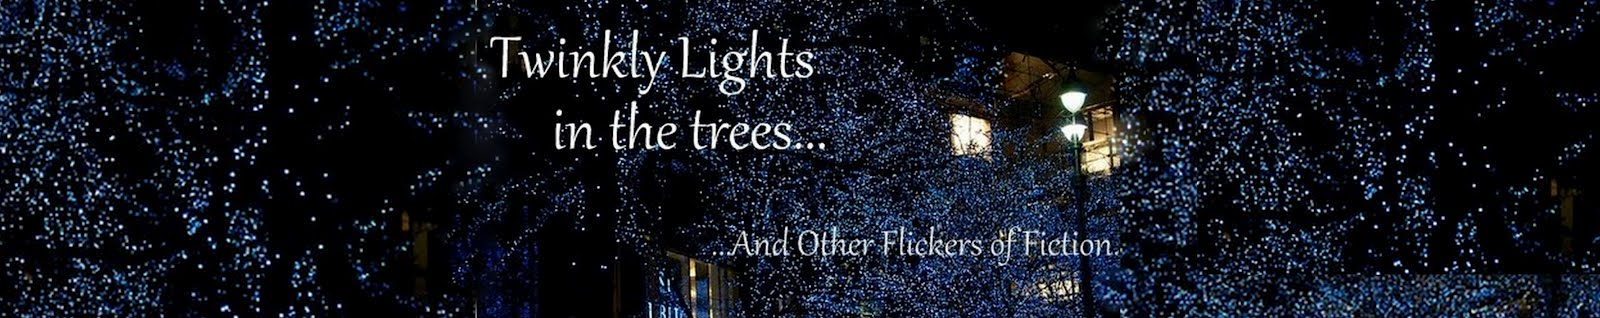 Twinkly Lights in the Trees...and Other Flickers of Fiction